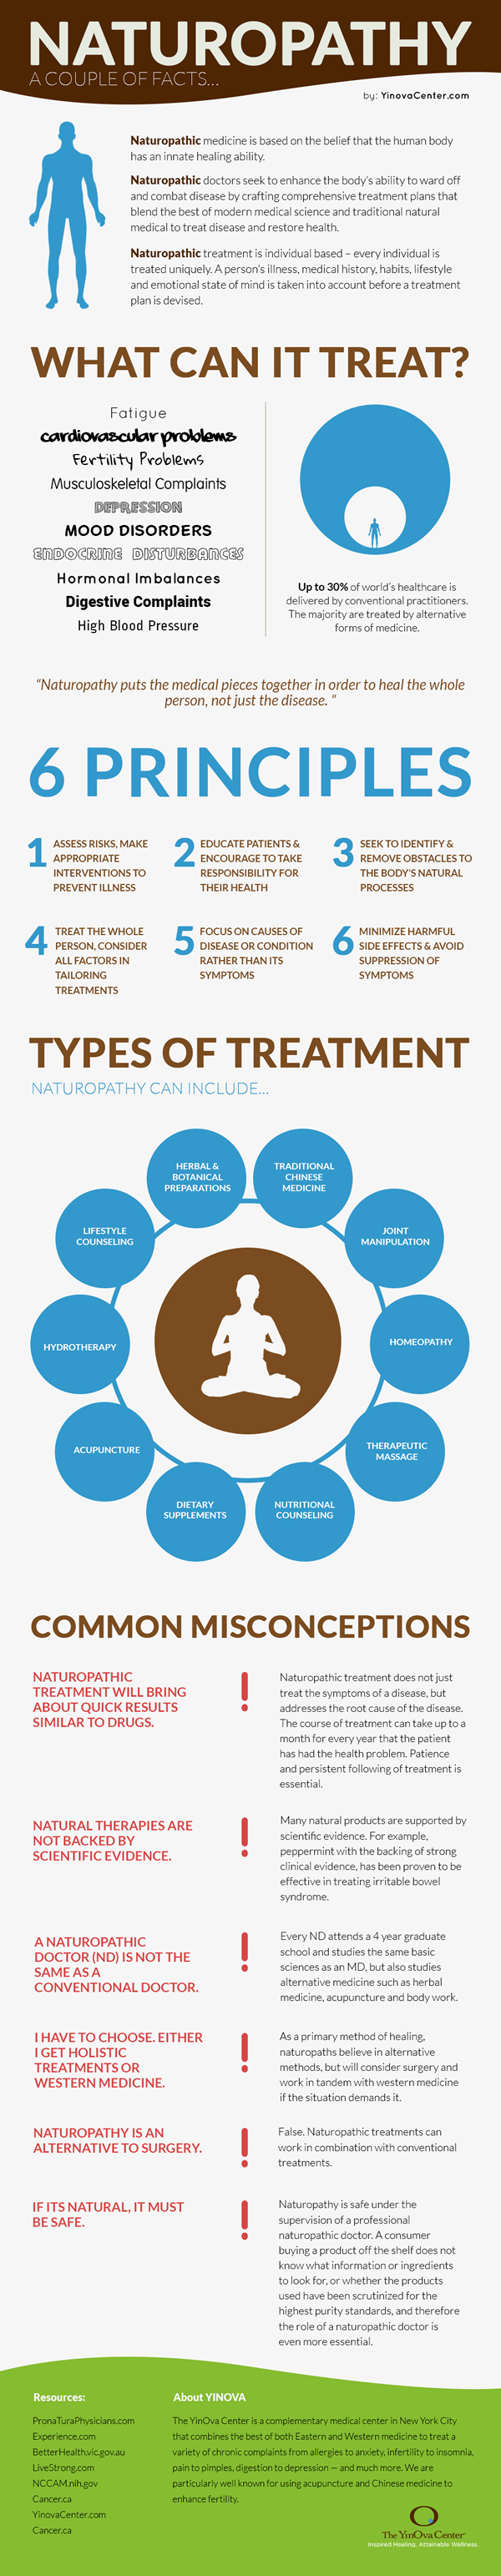 Naturopathy Infographic from YinOva